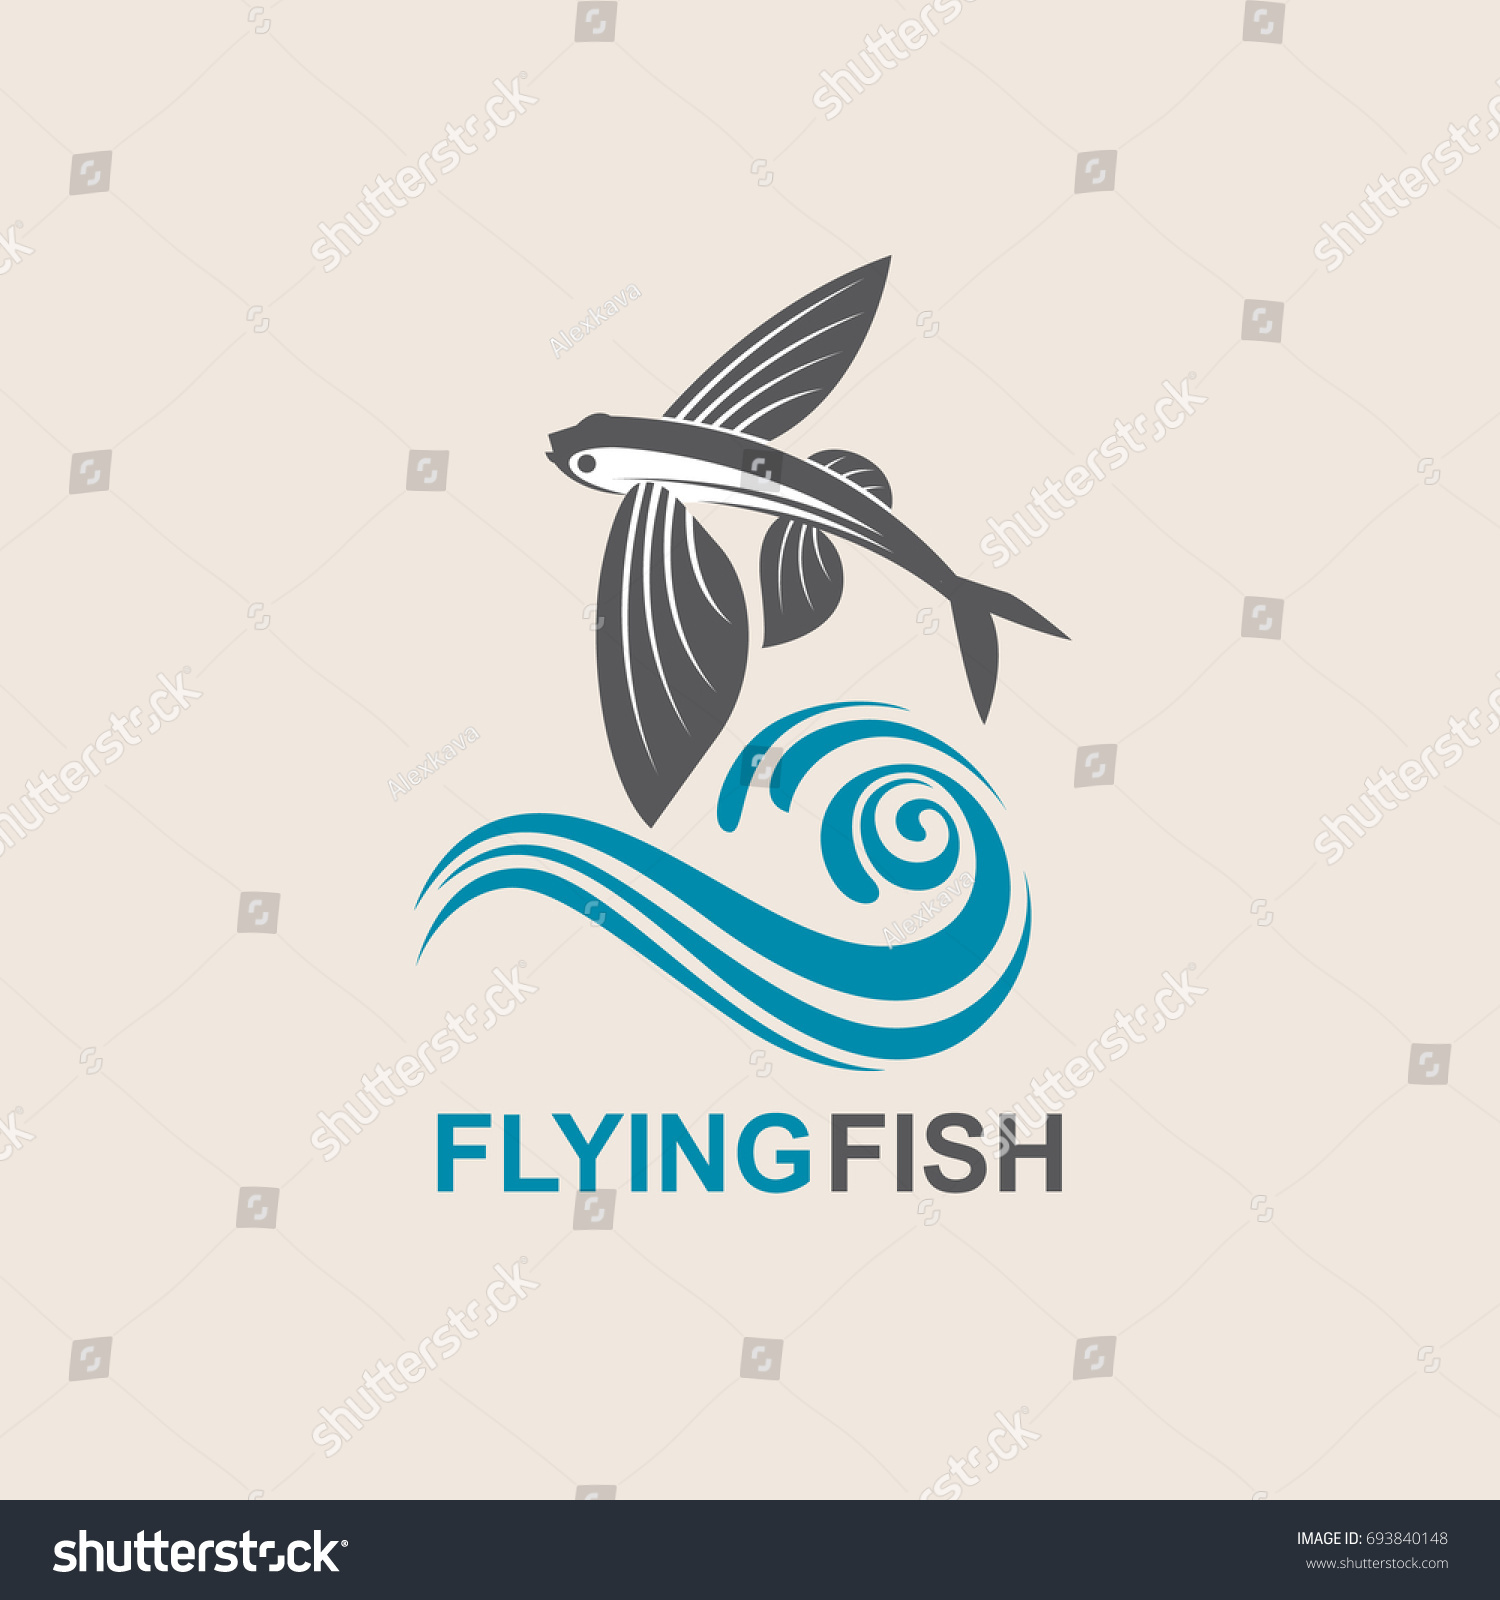 Icon Flying Fish Waves Stock Vector Royalty Free 693840148